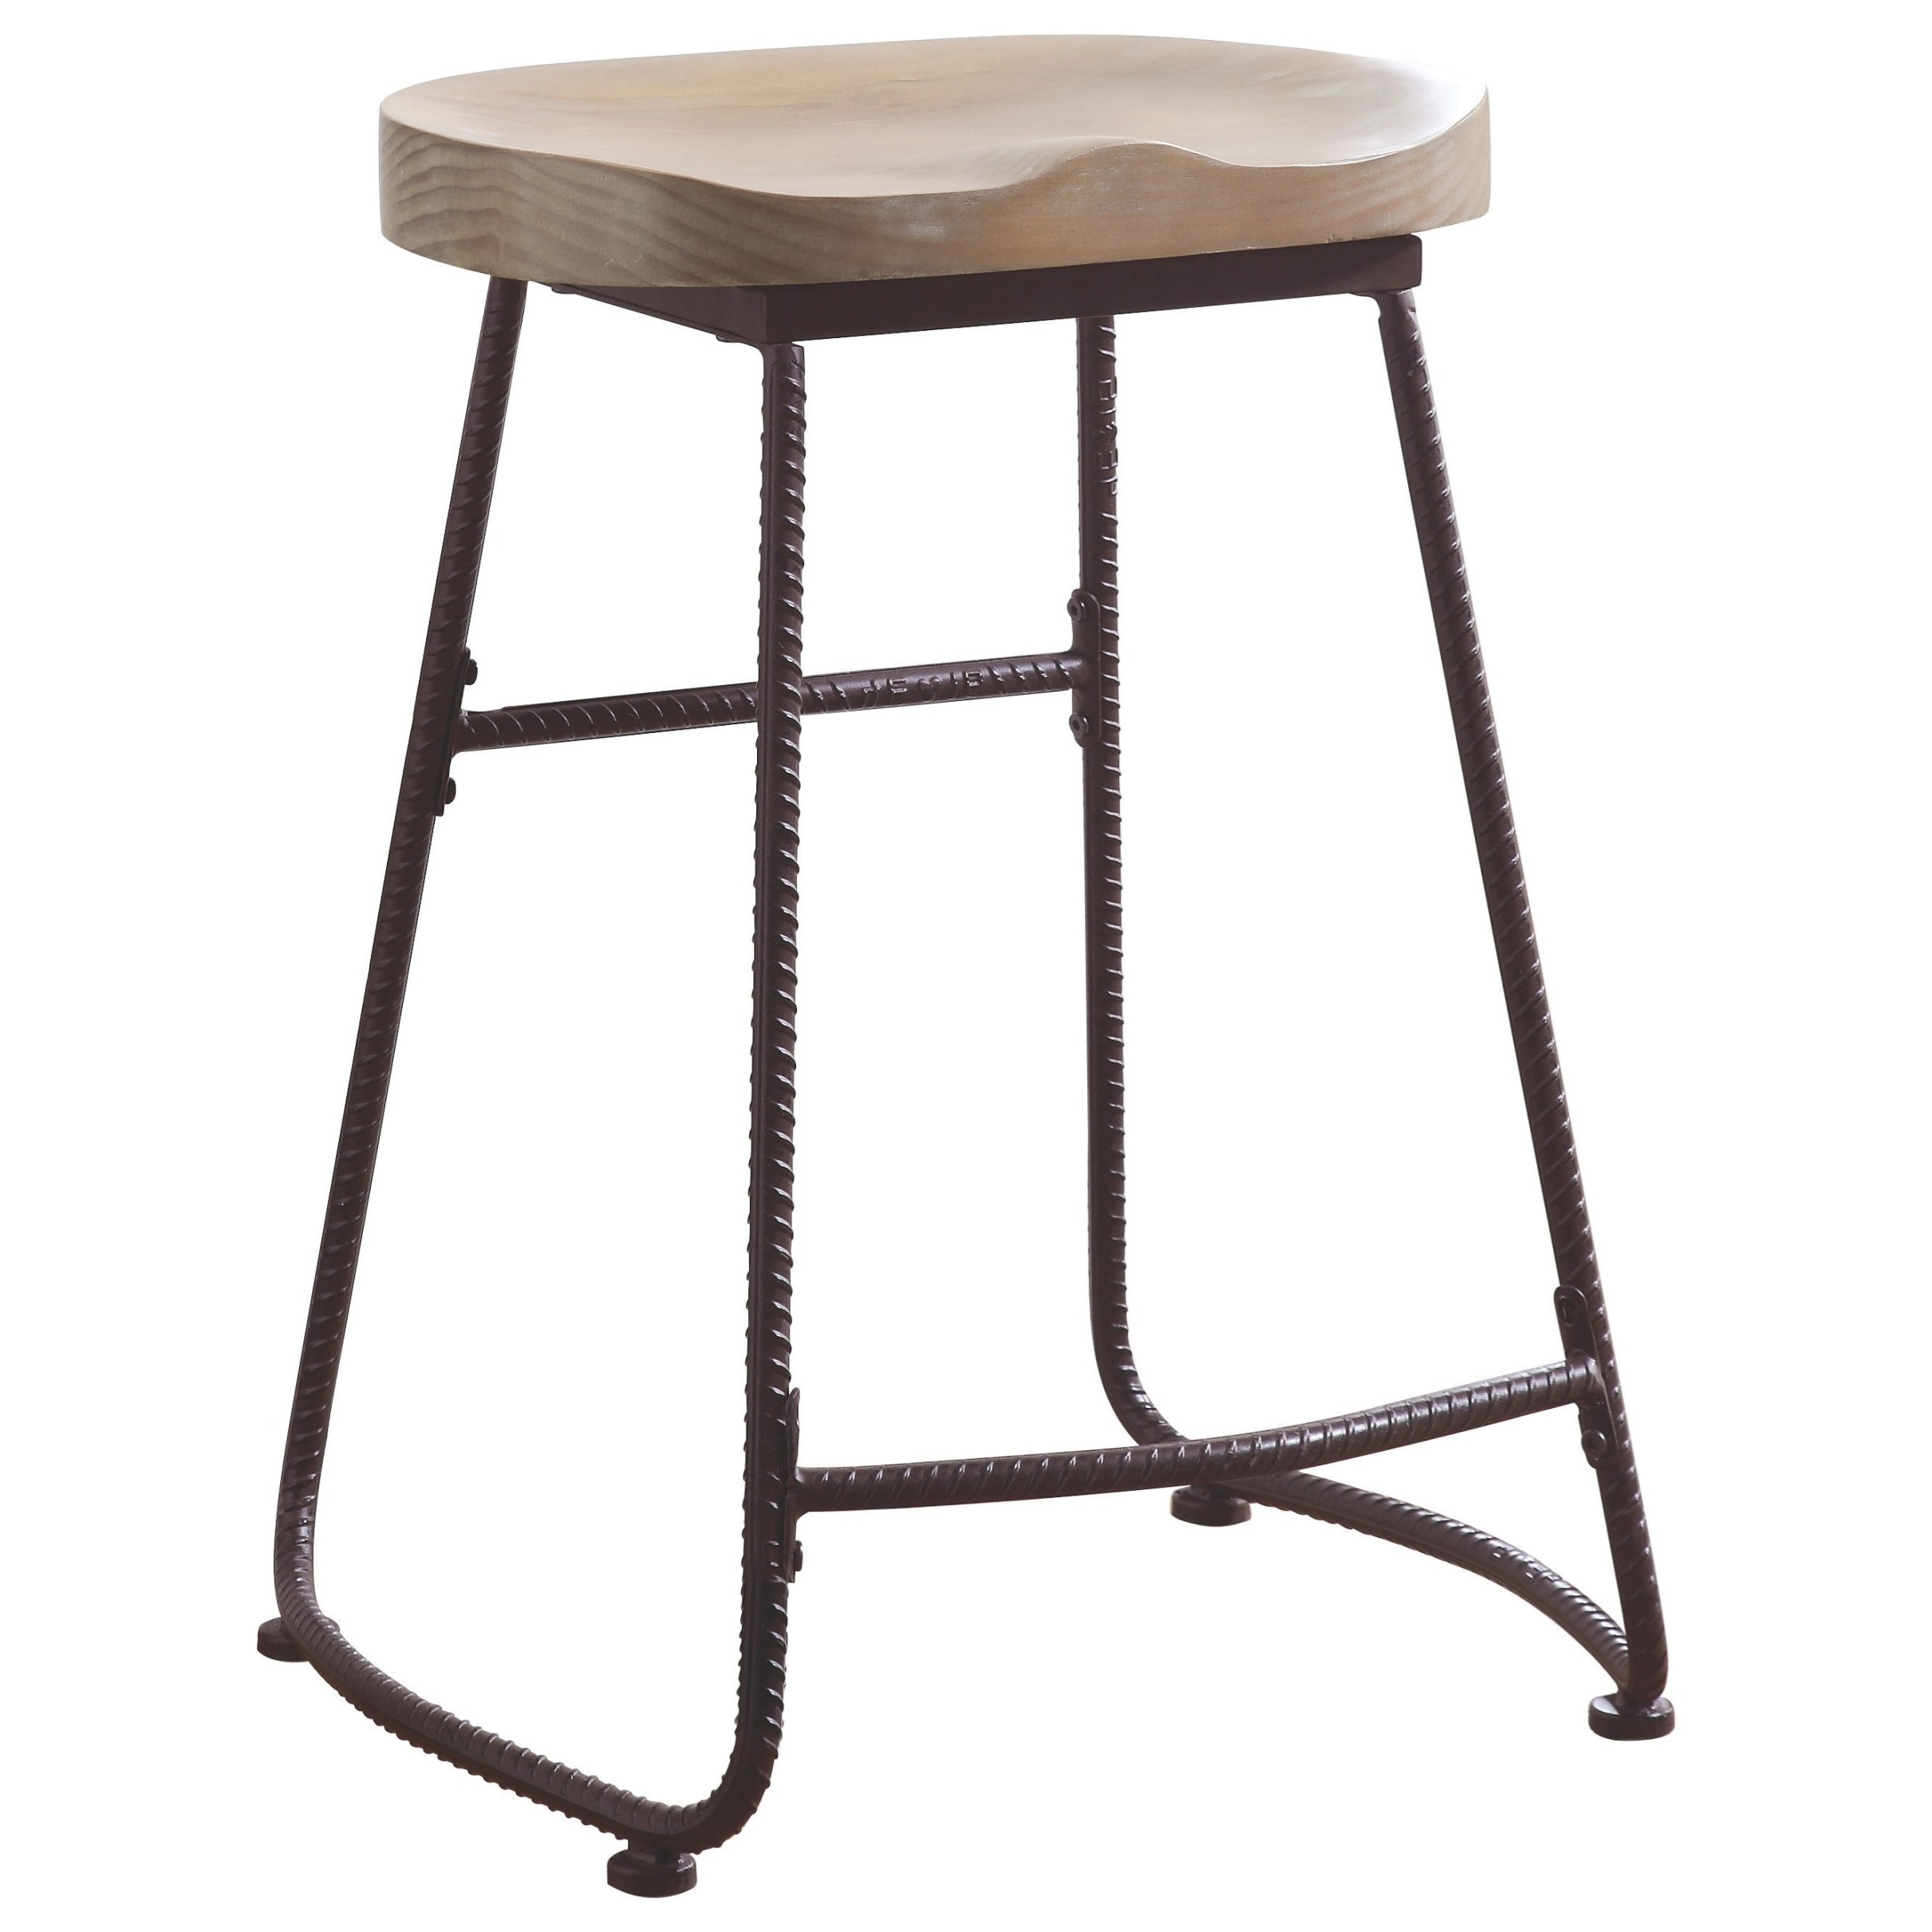 Coaster Dining Chairs And Bar Stools Rustic Counter Height for Counter Height Bar Stools